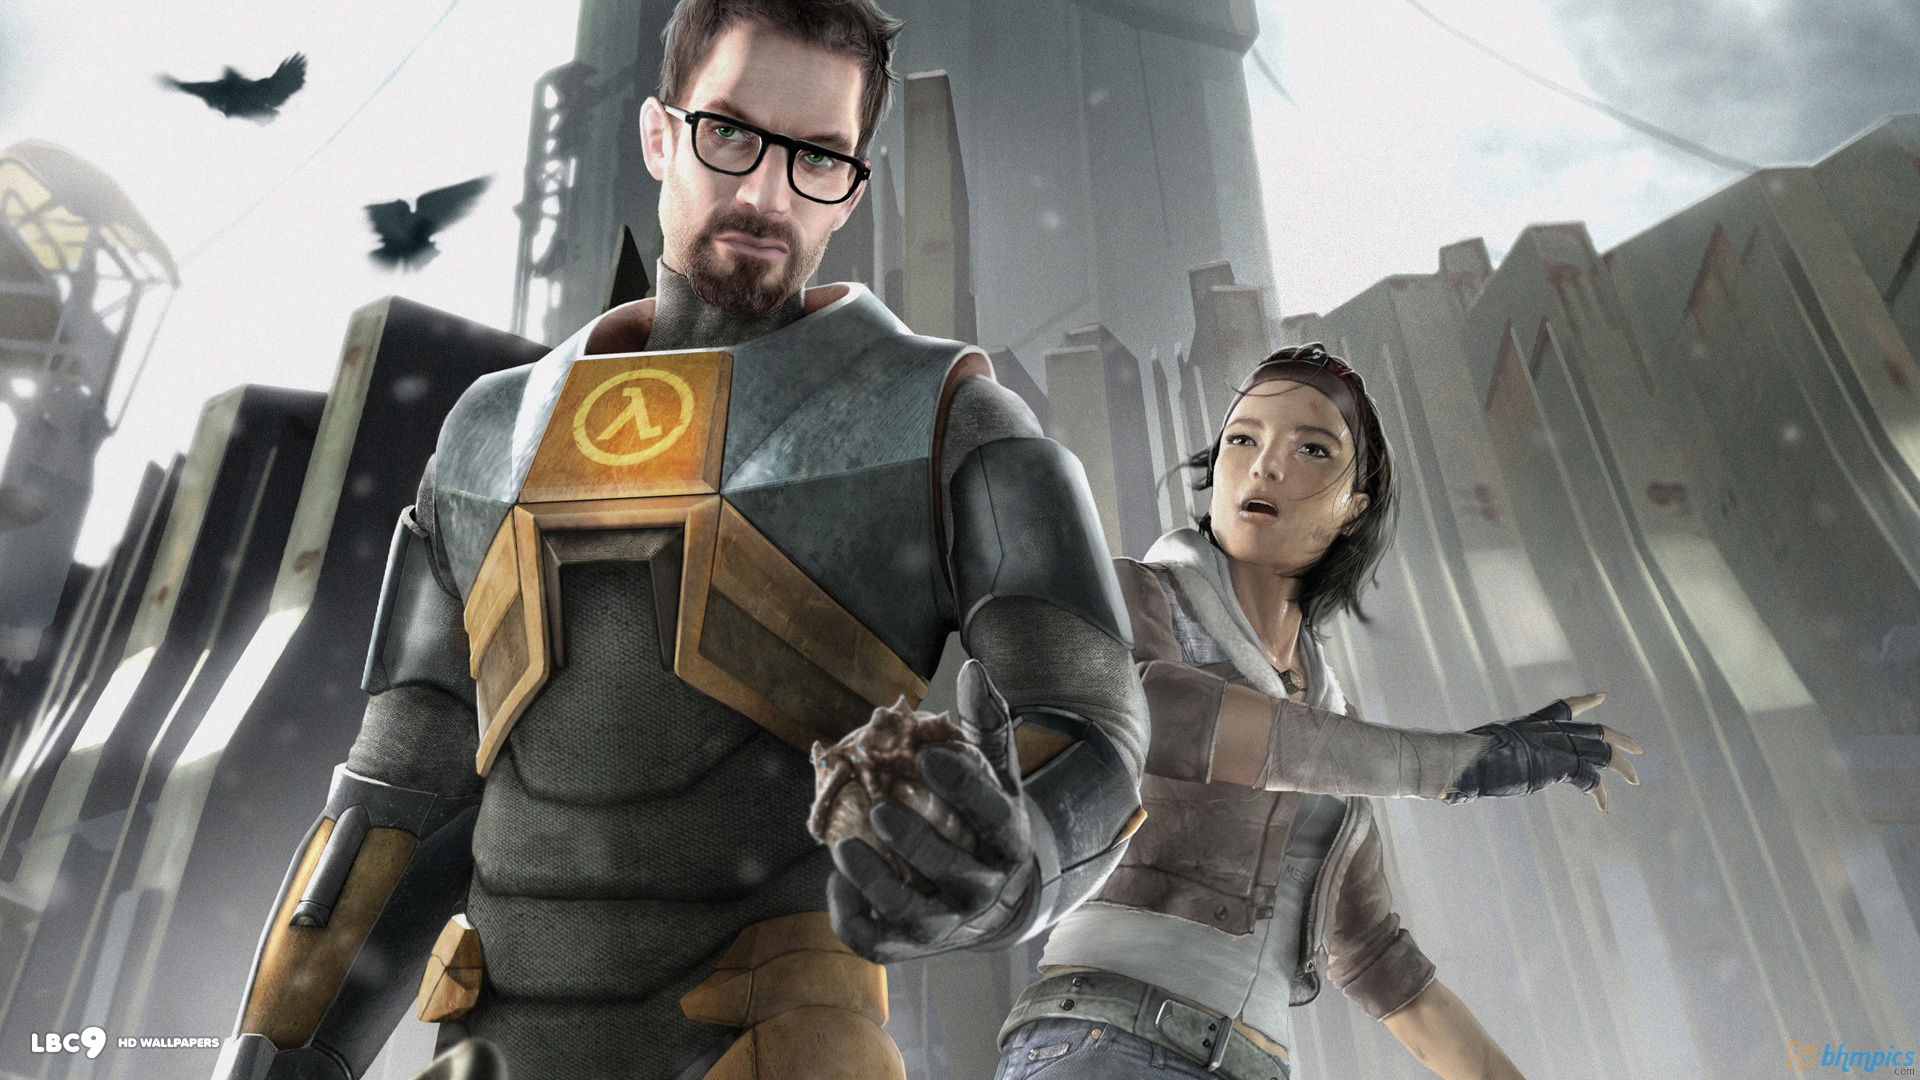 Here is a brief gameplay clip from Arkane's cancelled Half-Life game, Half-Life 2: Episode 4